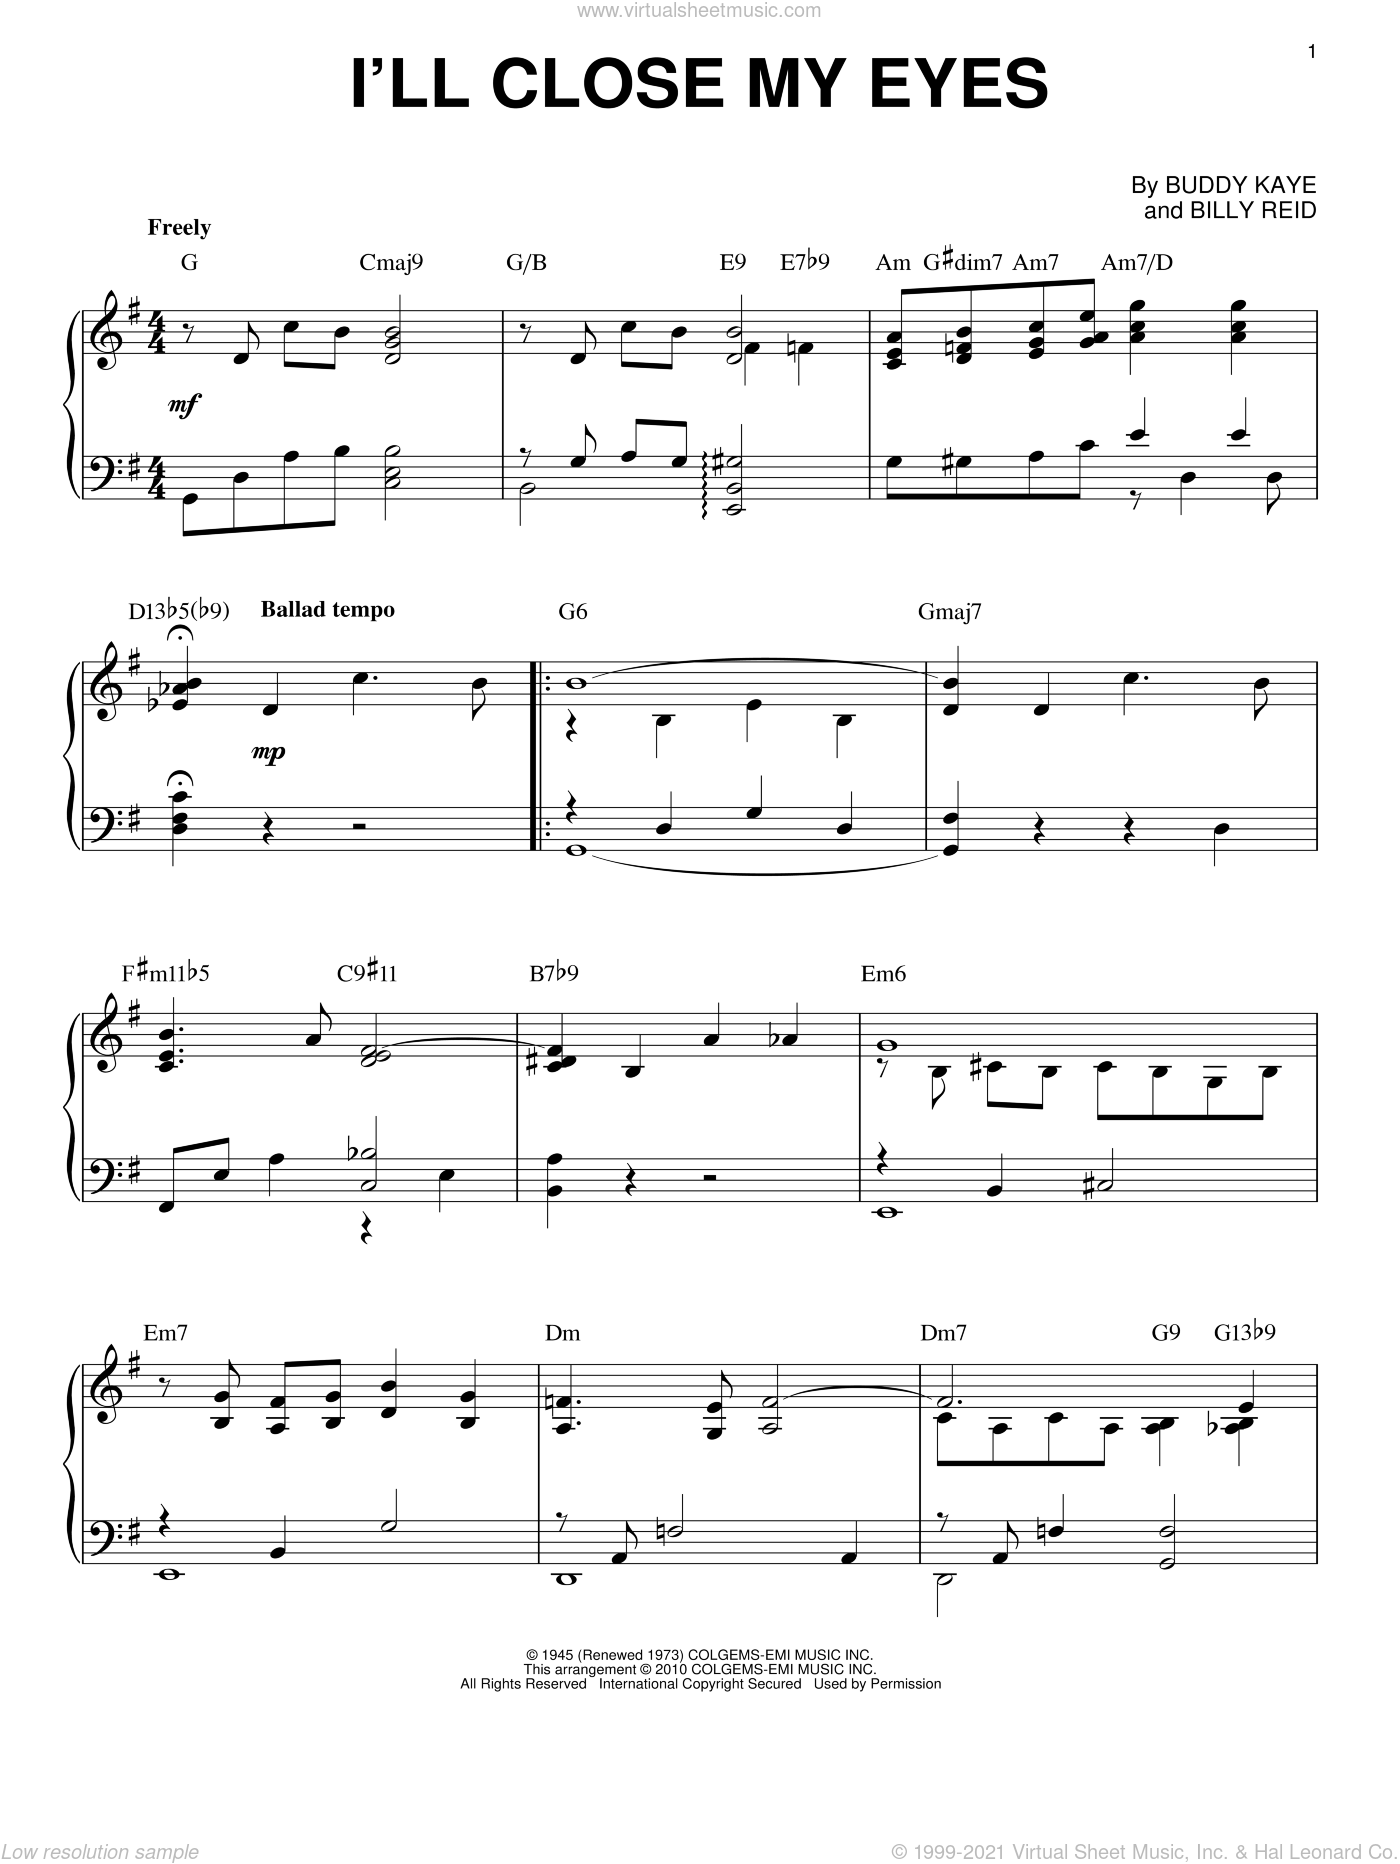 I'll Close My Eyes sheet music for piano solo by Buddy Kaye, Kenny Burrell and Billy Reid. Score Image Preview.